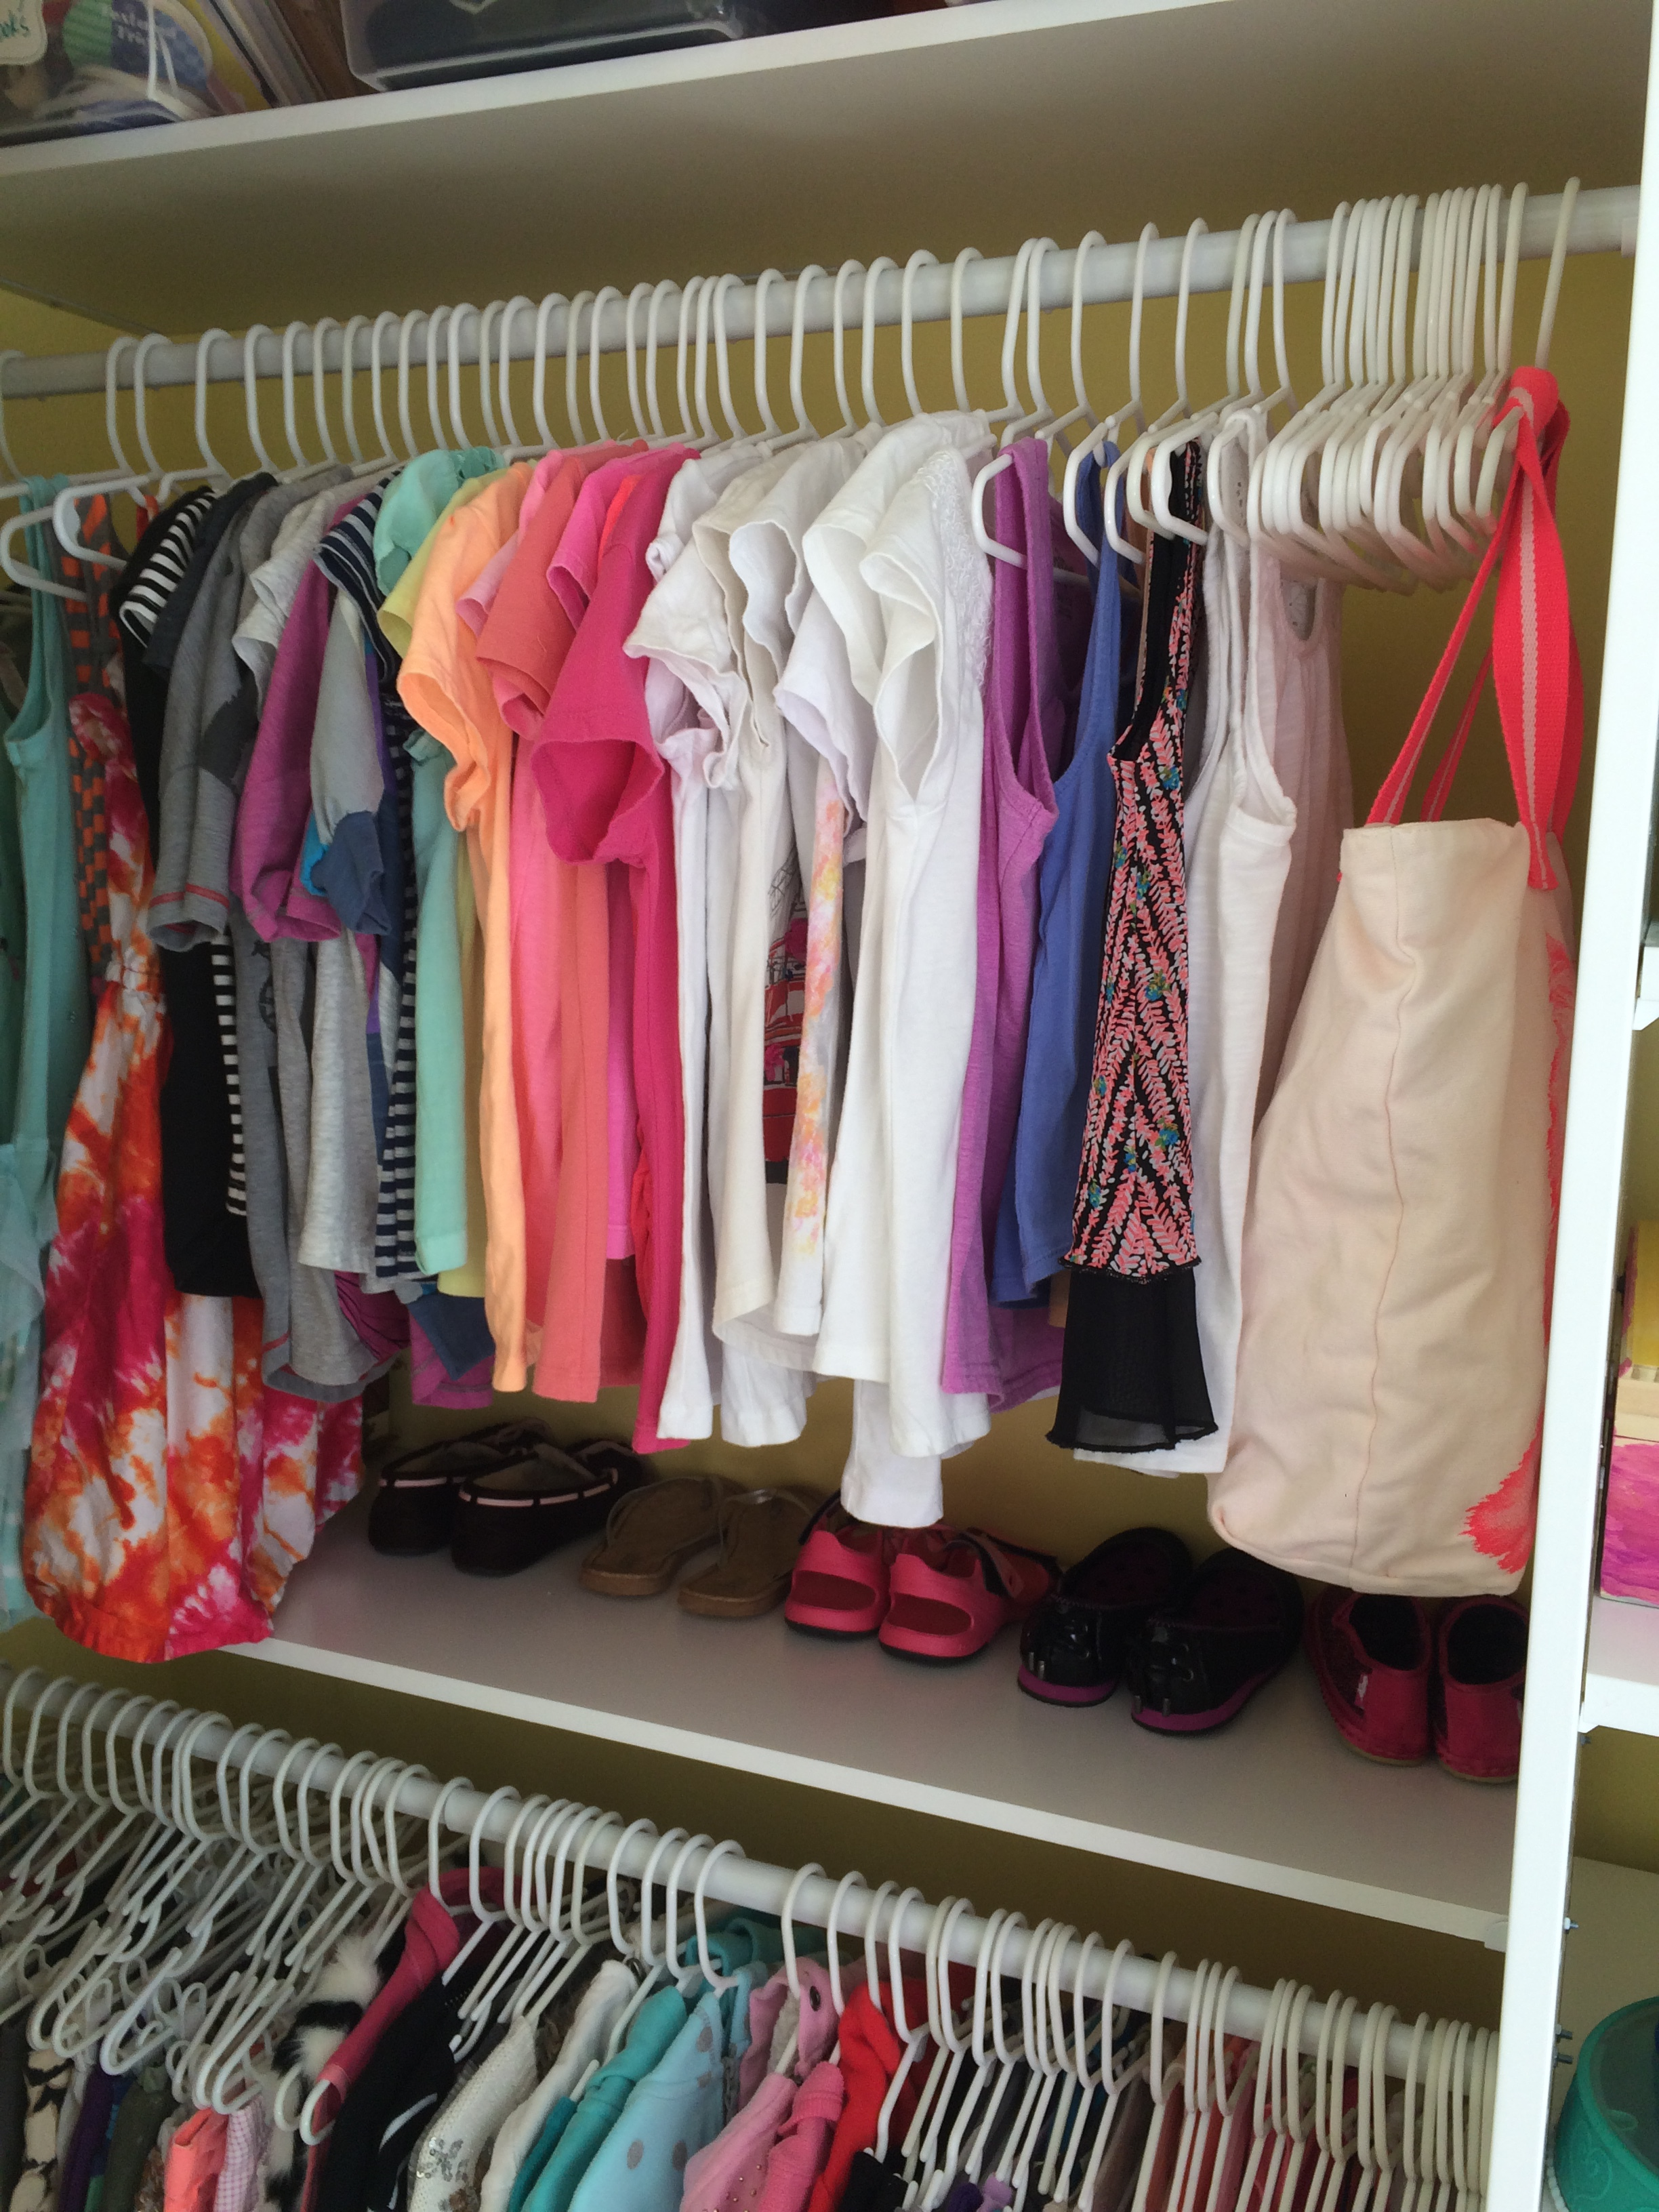 key closet blog children kids as and of order the s is simplicity organized includes these have can they within yes that img to structure this areas organizing closets all above you spaces well